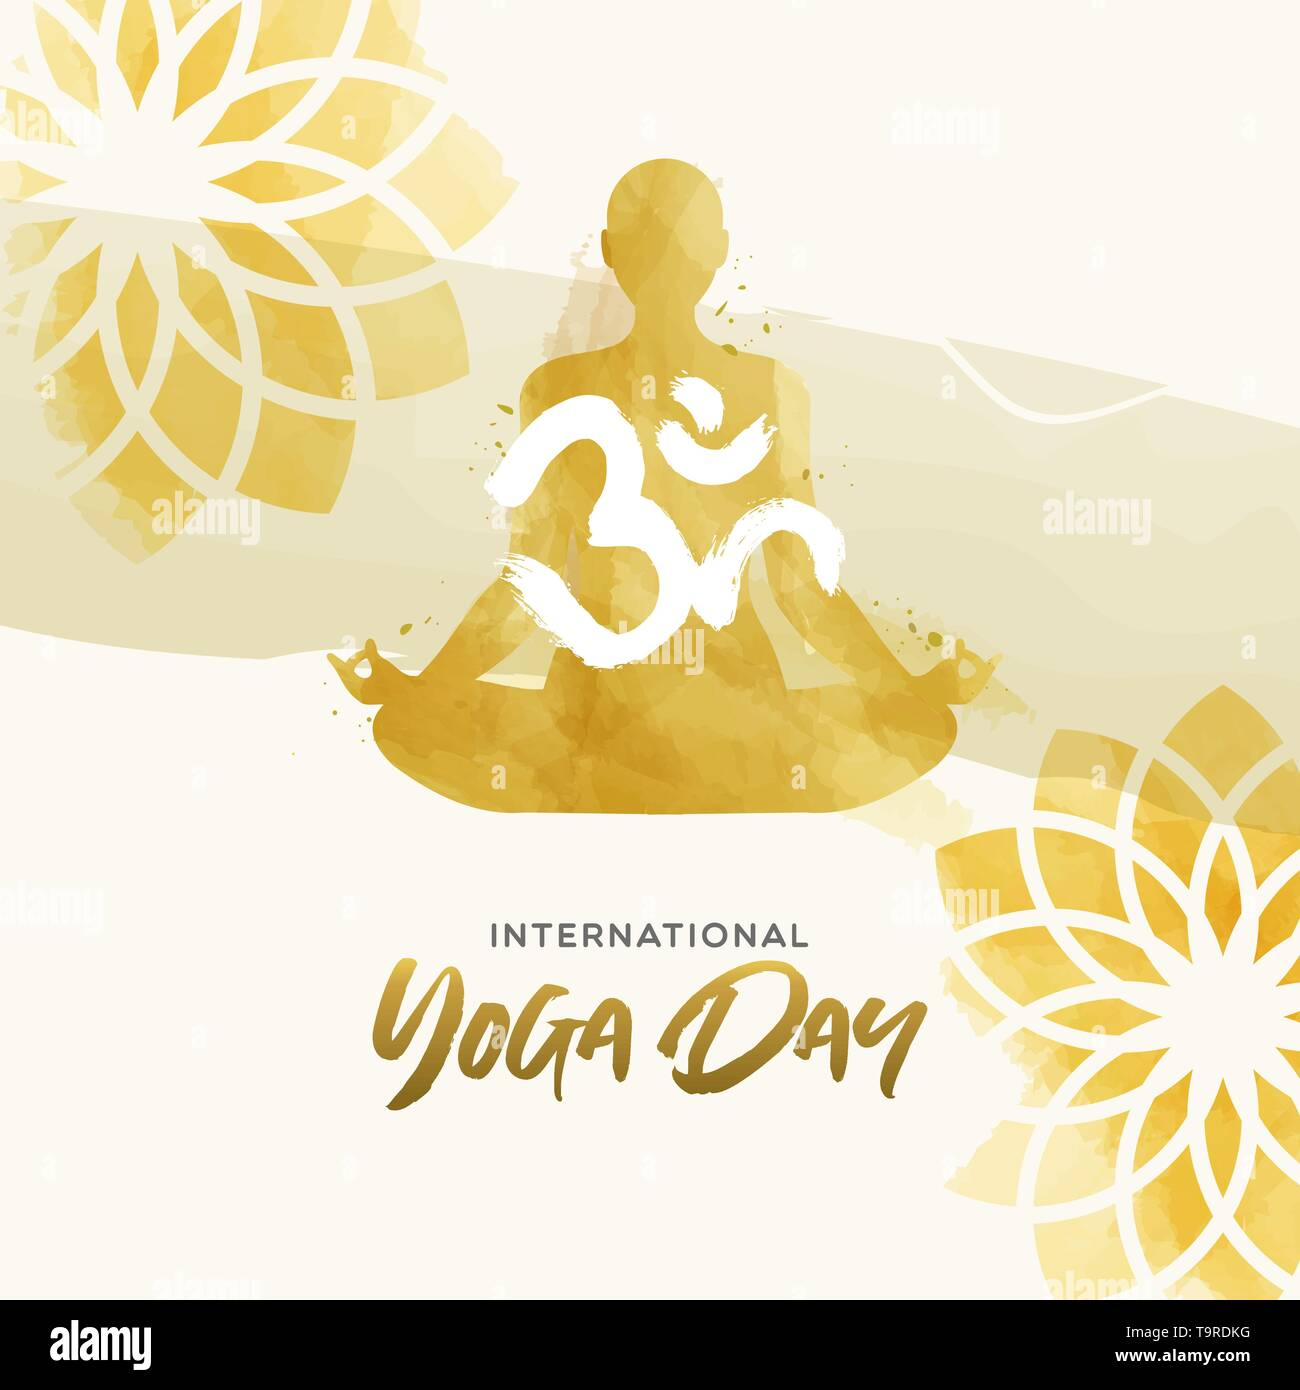 International Yoga Day greeting card illustration. Watercolor art of woman doing lotus pose exercise and floral background. - Stock Vector